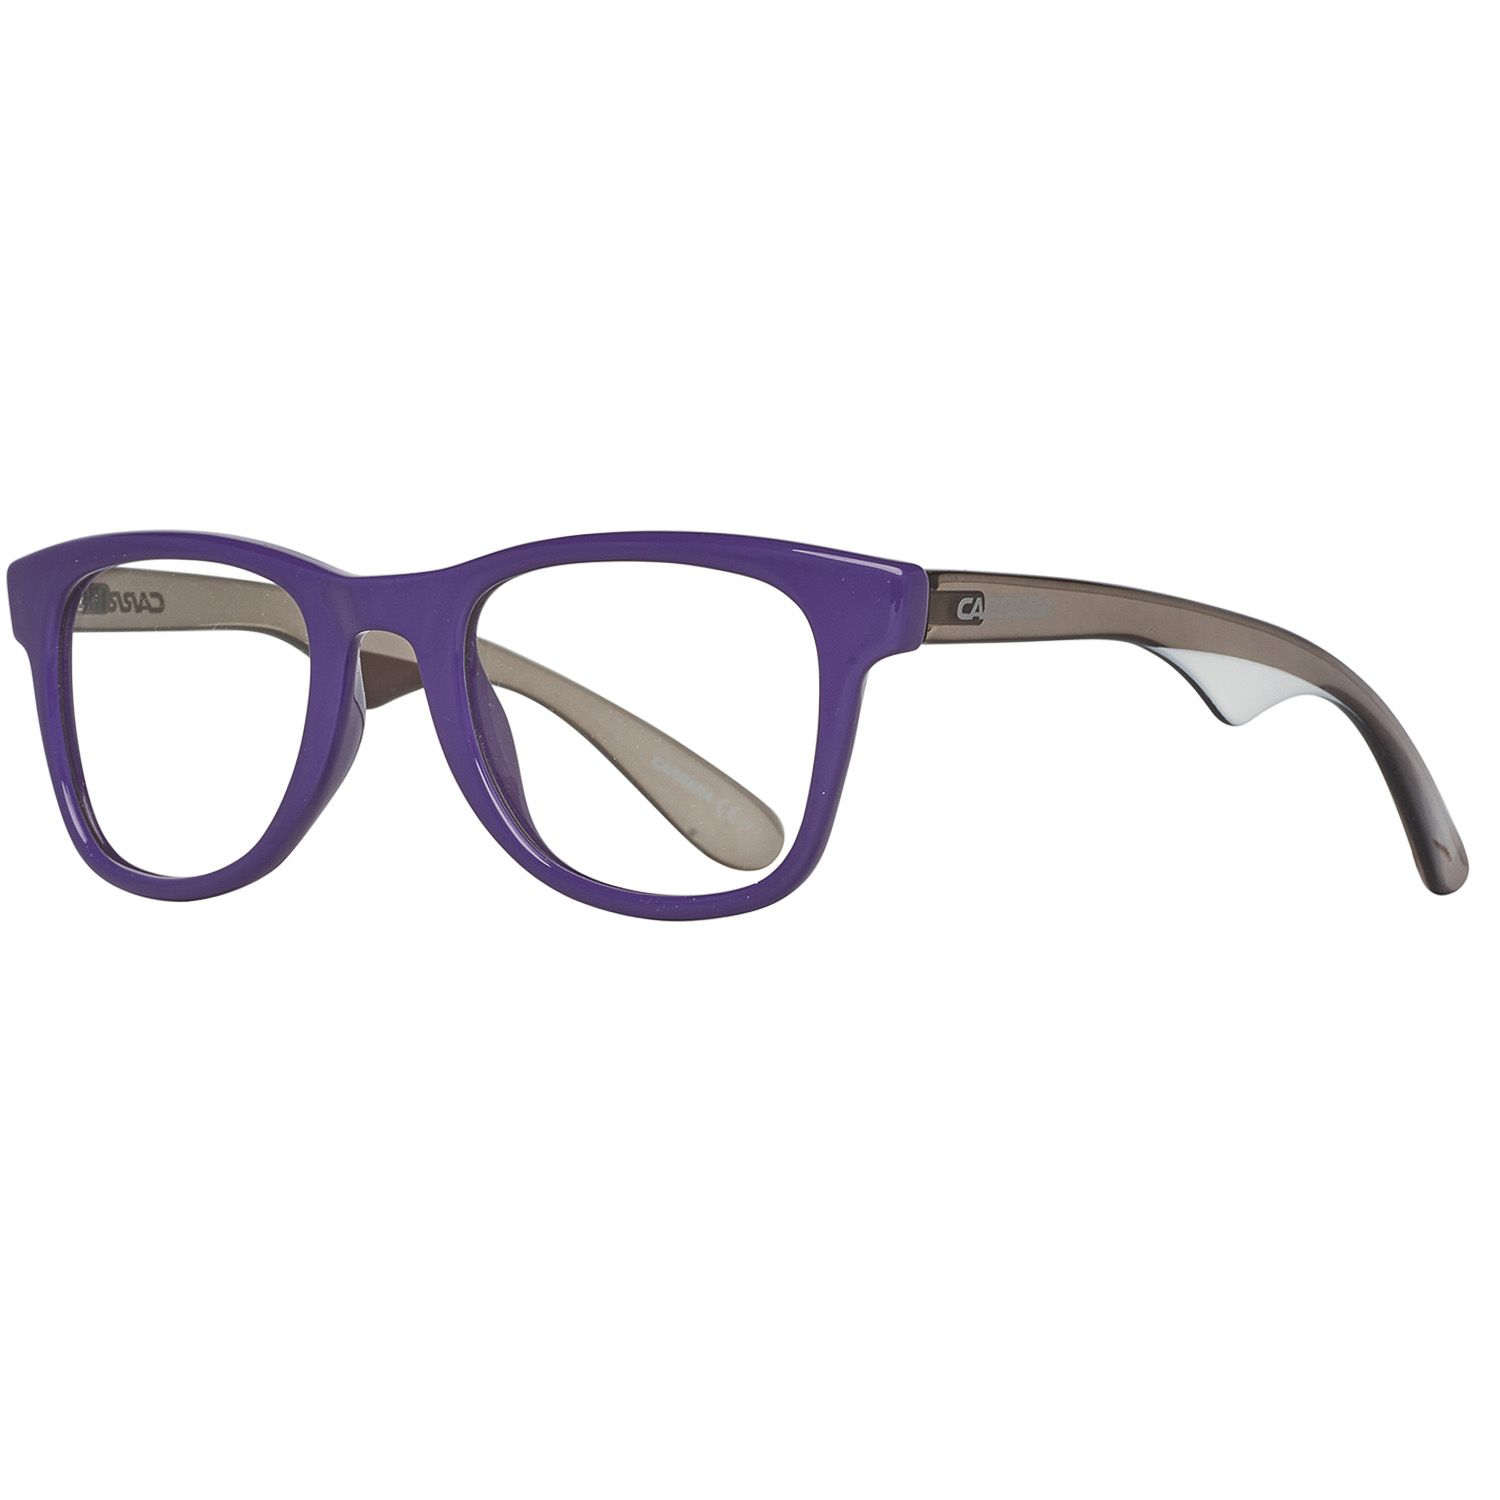 Carrera Sunglasses CA6000 2UV/99 50 Unisex Purple